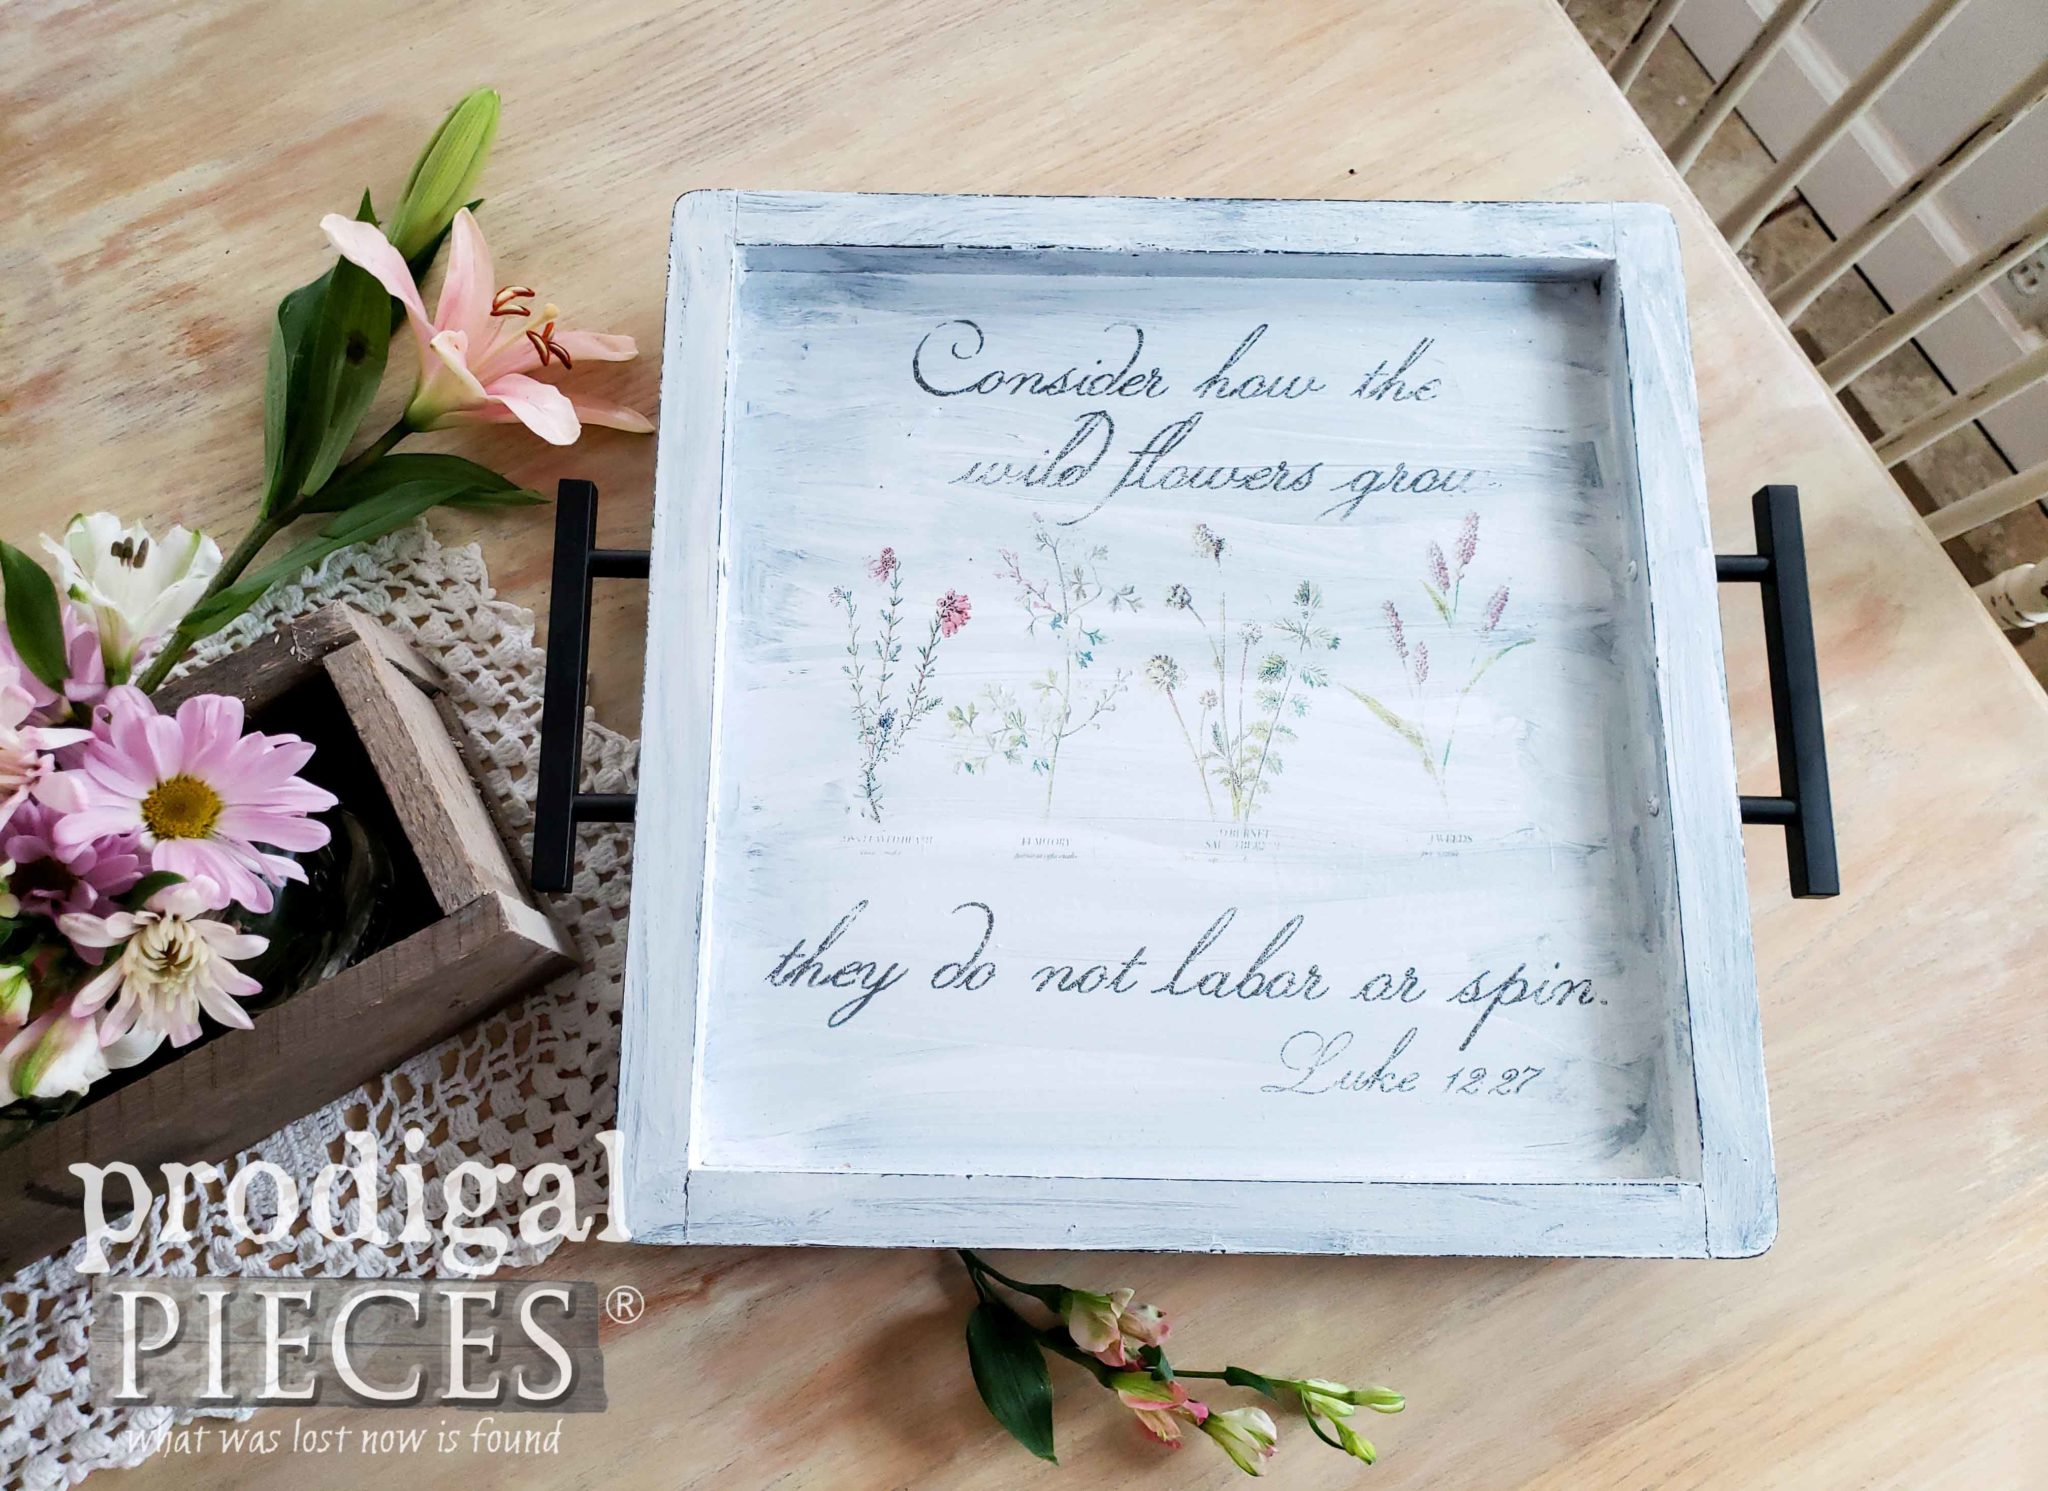 Farmhouse Style Botanical Serving Tray with Tutorial by Larissa of Prodigal Pieces | prodigalpieces.com #prodigalpieces #handmade #home #farmhouse #diy #homedecor #homedecorideas